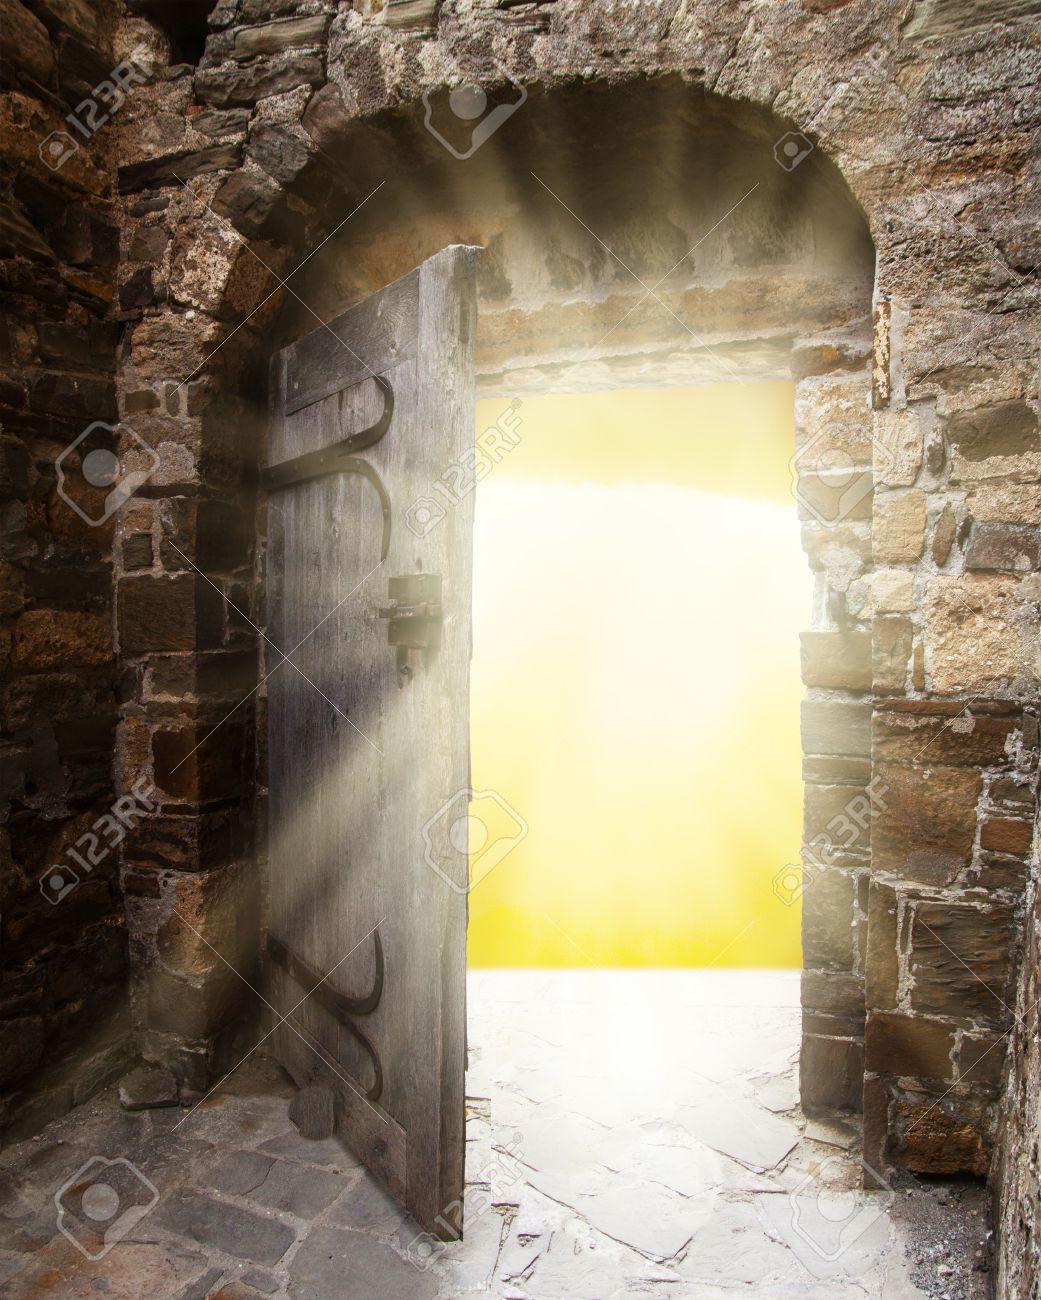 Old doors opening to show a bright light in the darkness Stock Photo - 26574026 & Old Doors Opening To Show A Bright Light In The Darkness Stock Photo ...